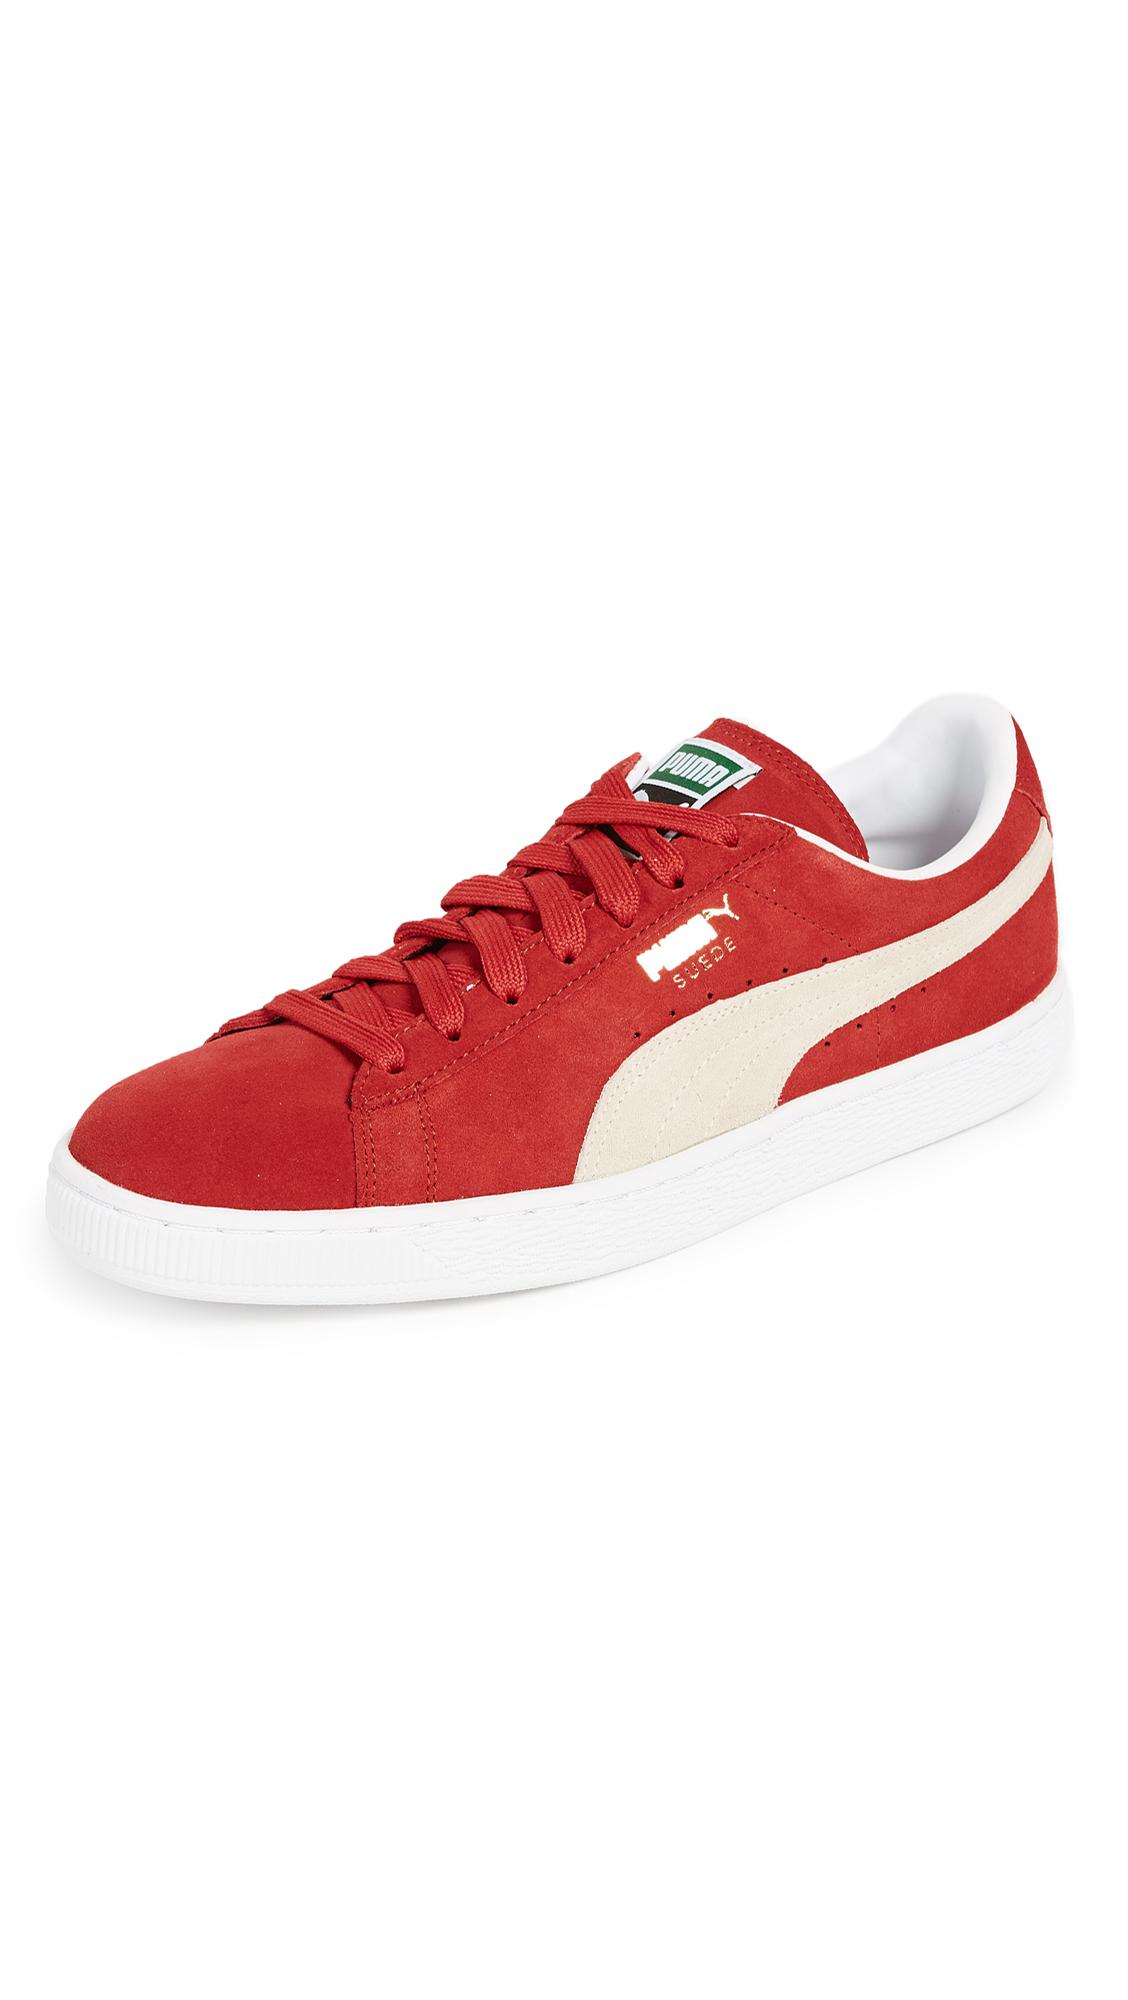 731ad79fdf5a Lyst - Puma Select Suede Classic Plus Sneakers in Red for Men